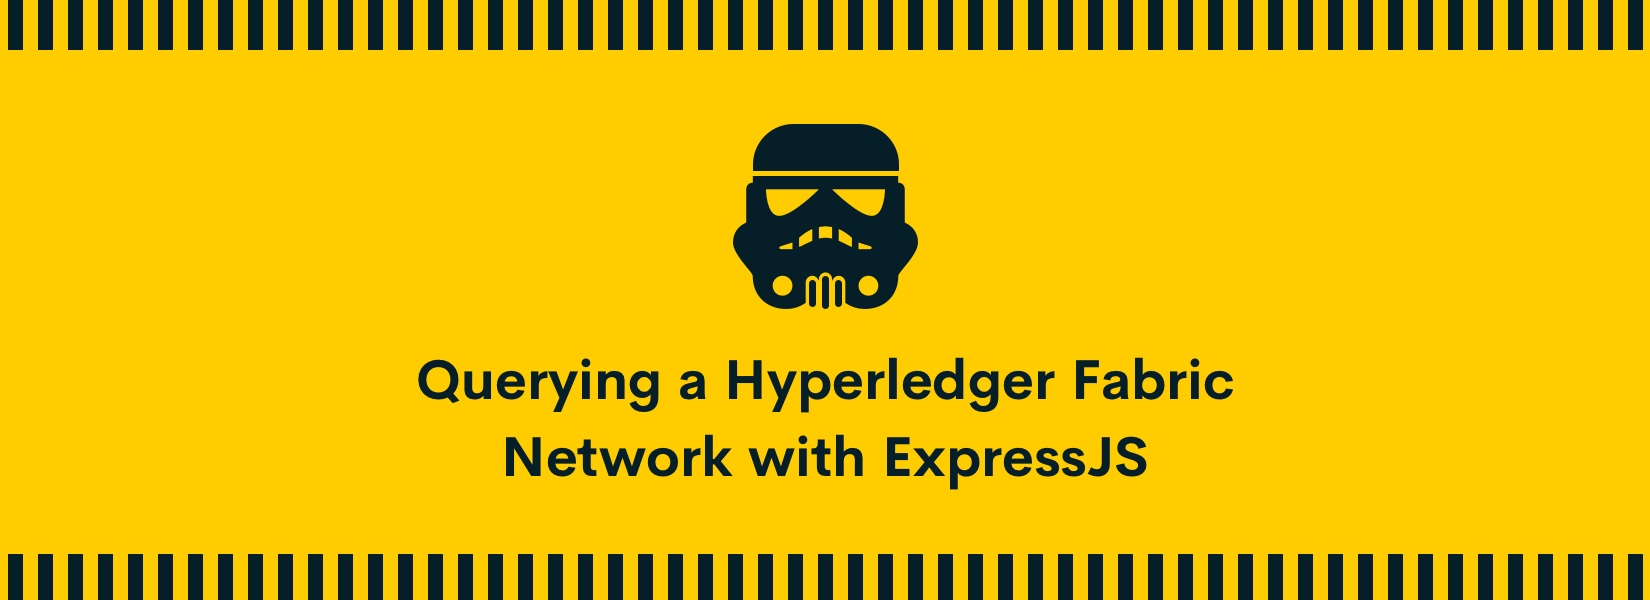 Dummies Guide to Querying a Hyperledger Fabric Blockchain Network with ExpressJS